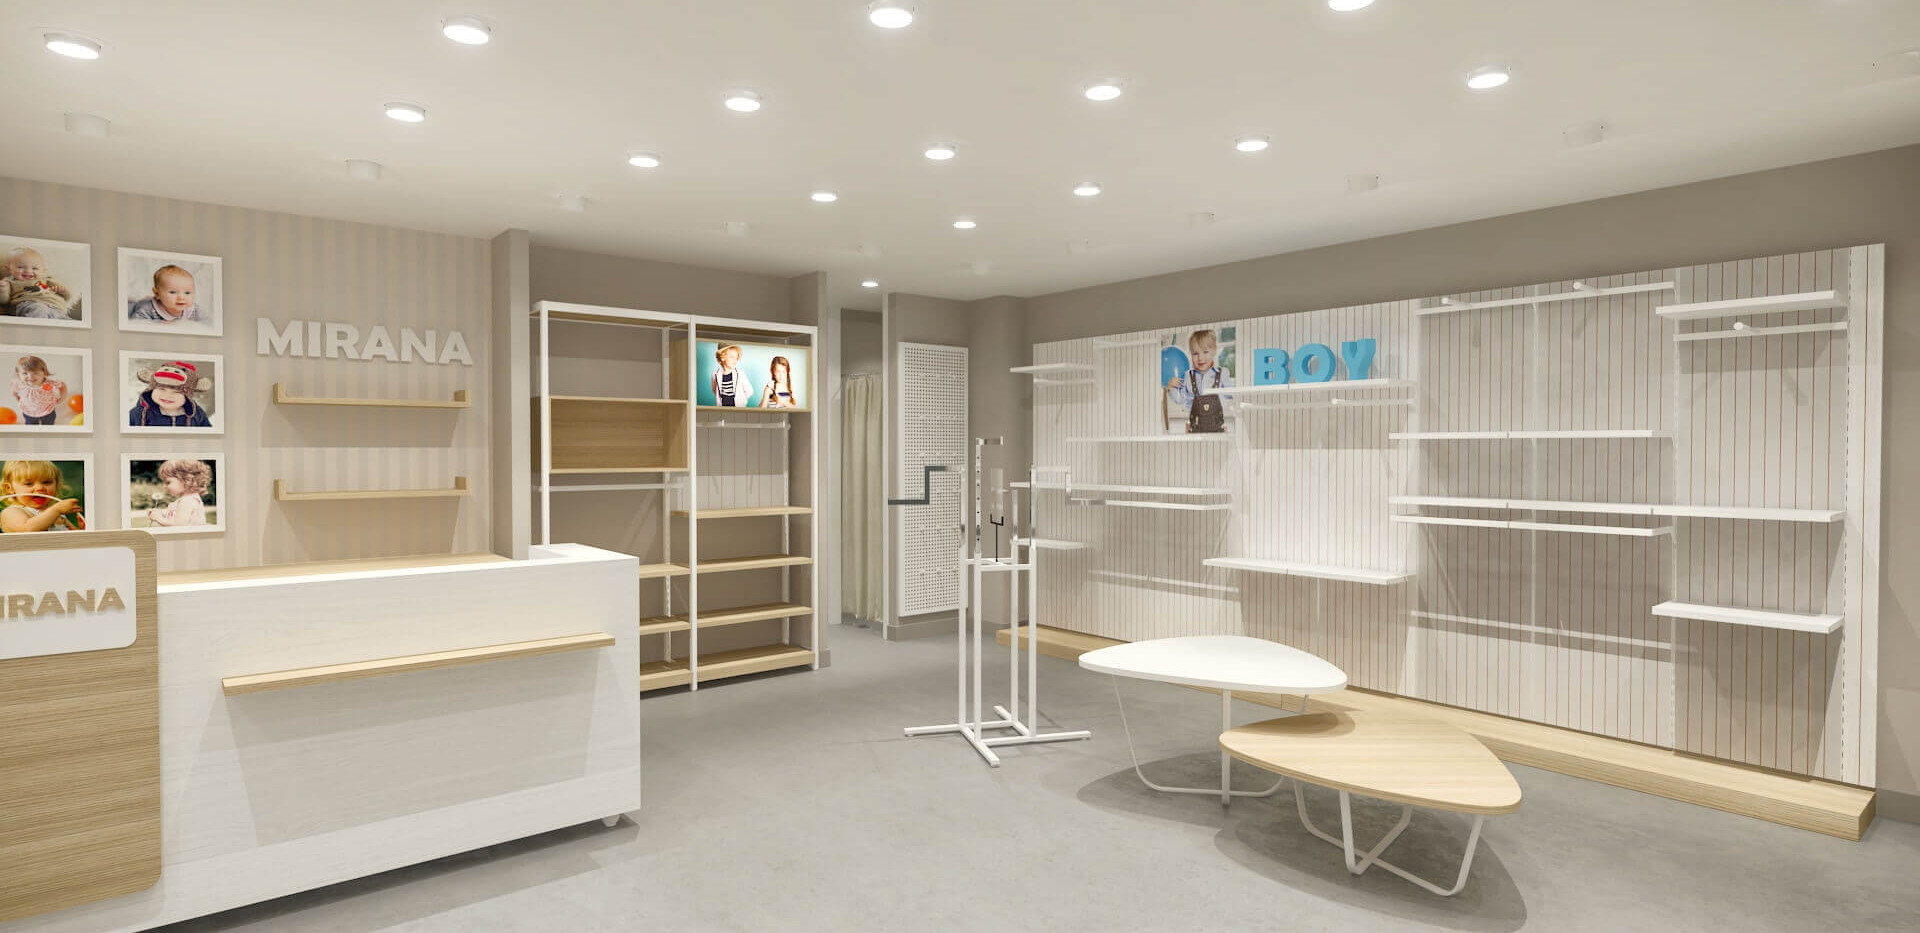 Mirana - Kids Store Shop Design-2.jpg